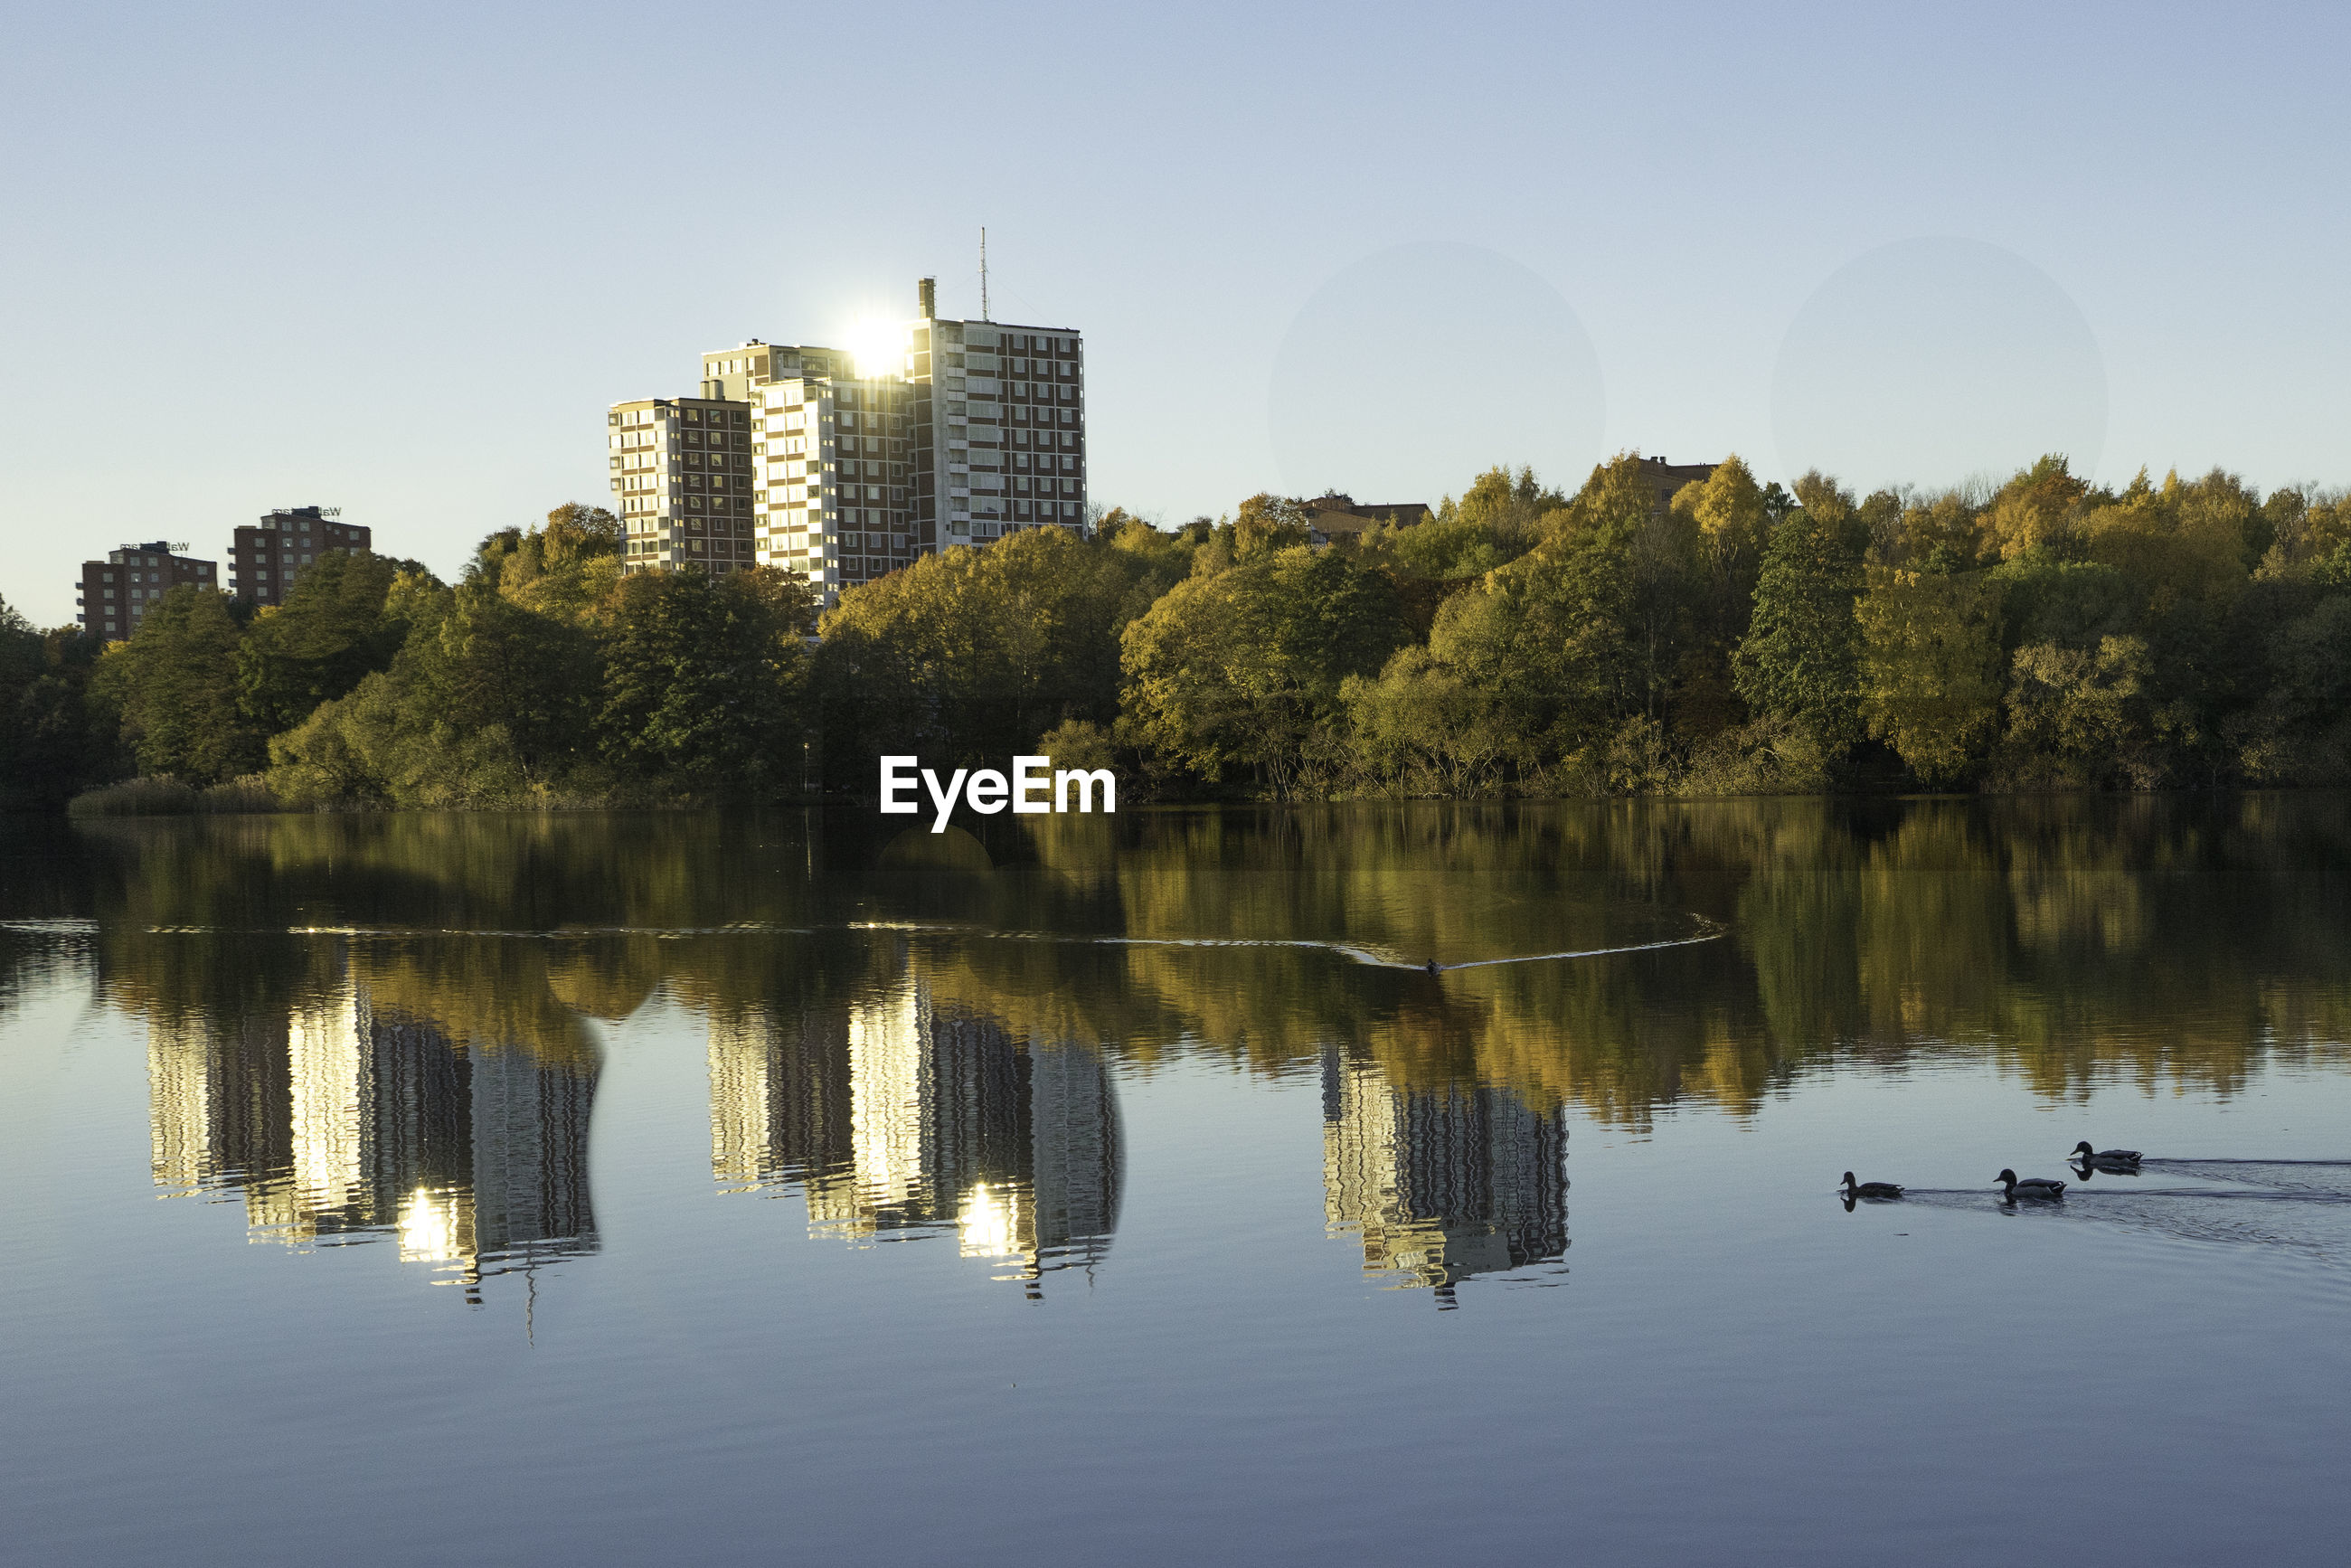 water, reflection, tree, sky, lake, waterfront, architecture, plant, built structure, nature, building exterior, clear sky, day, building, city, no people, beauty in nature, outdoors, tranquility, office building exterior, skyscraper